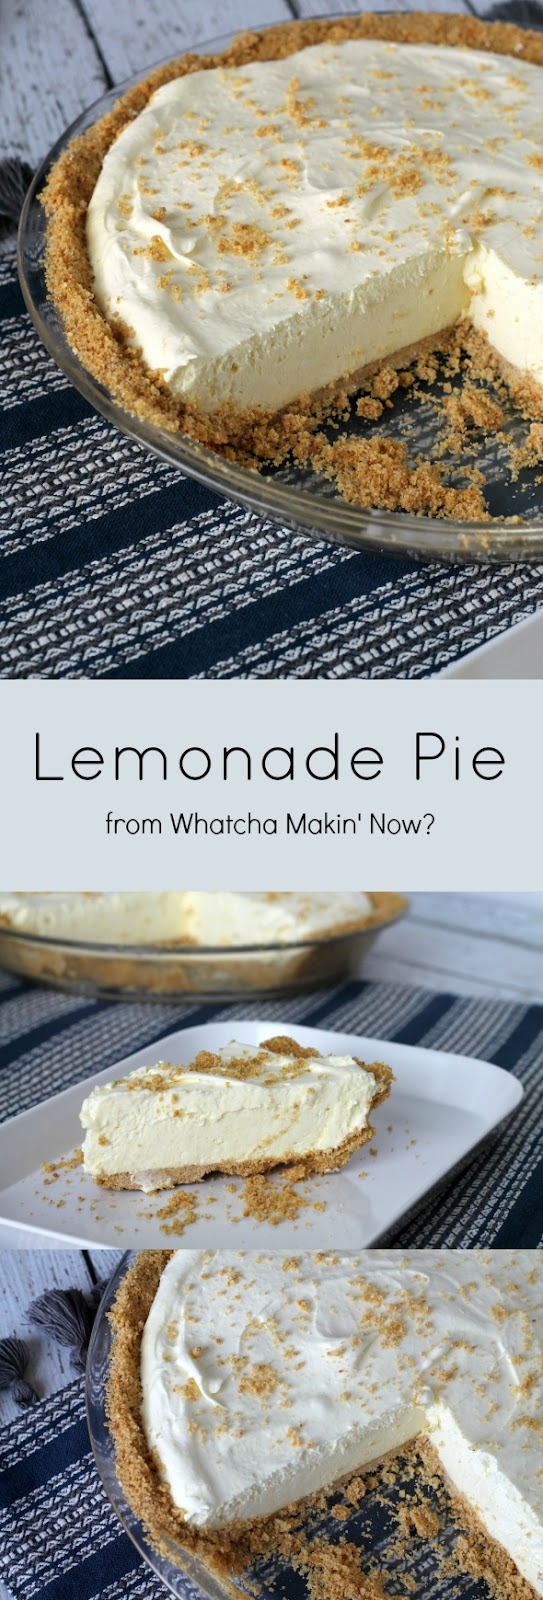 Lemonade Pie - the pie of the summer! It's so simple to make that you probably have all of the ingredients on hand.